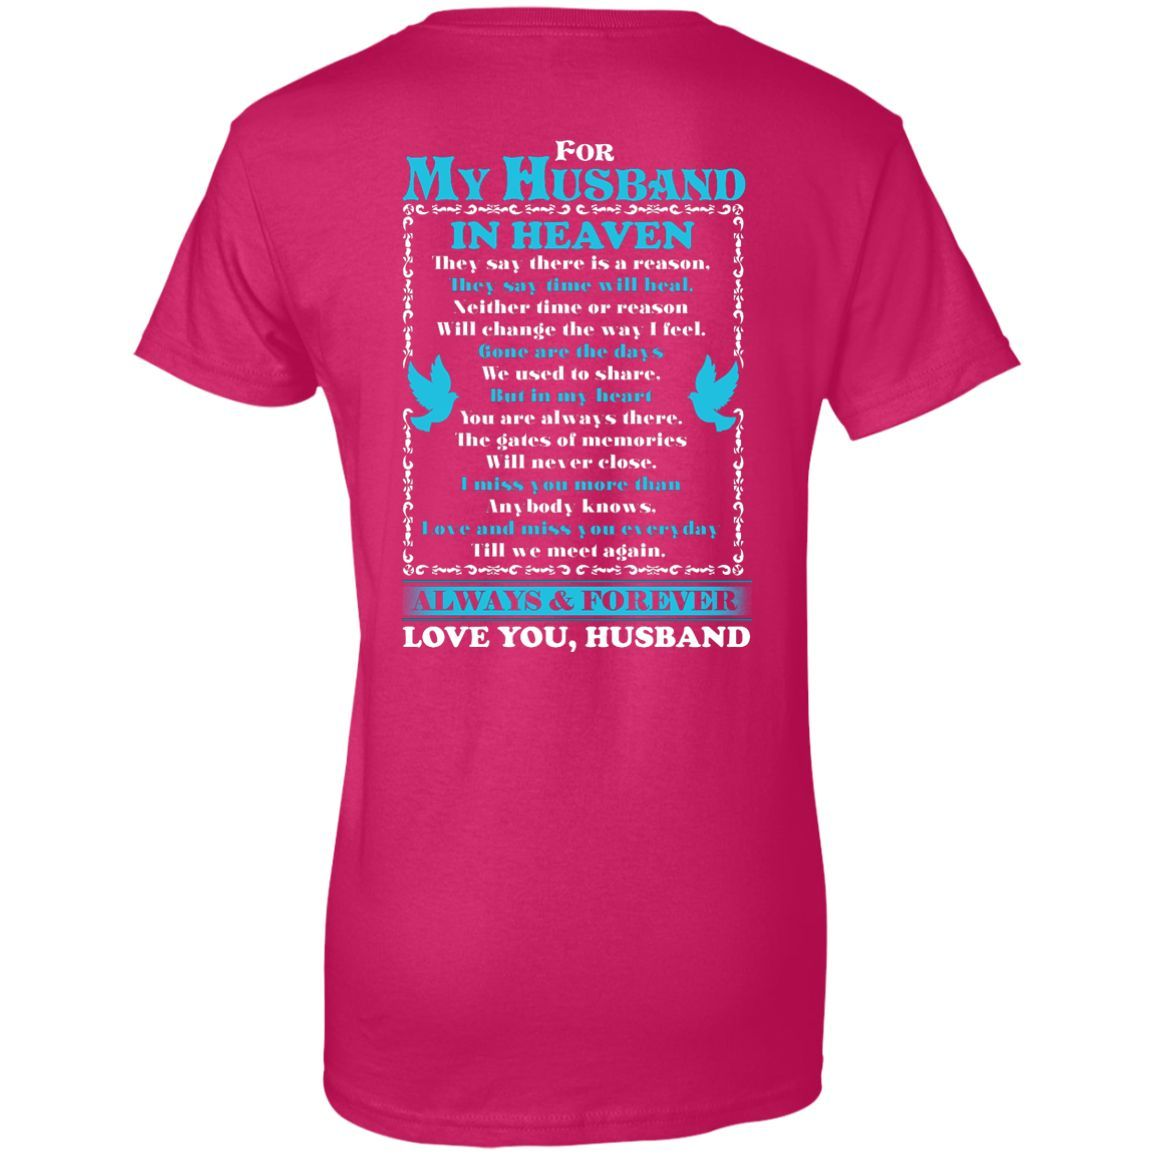 For My Husband Ladies' 100% Cotton T-Shirt